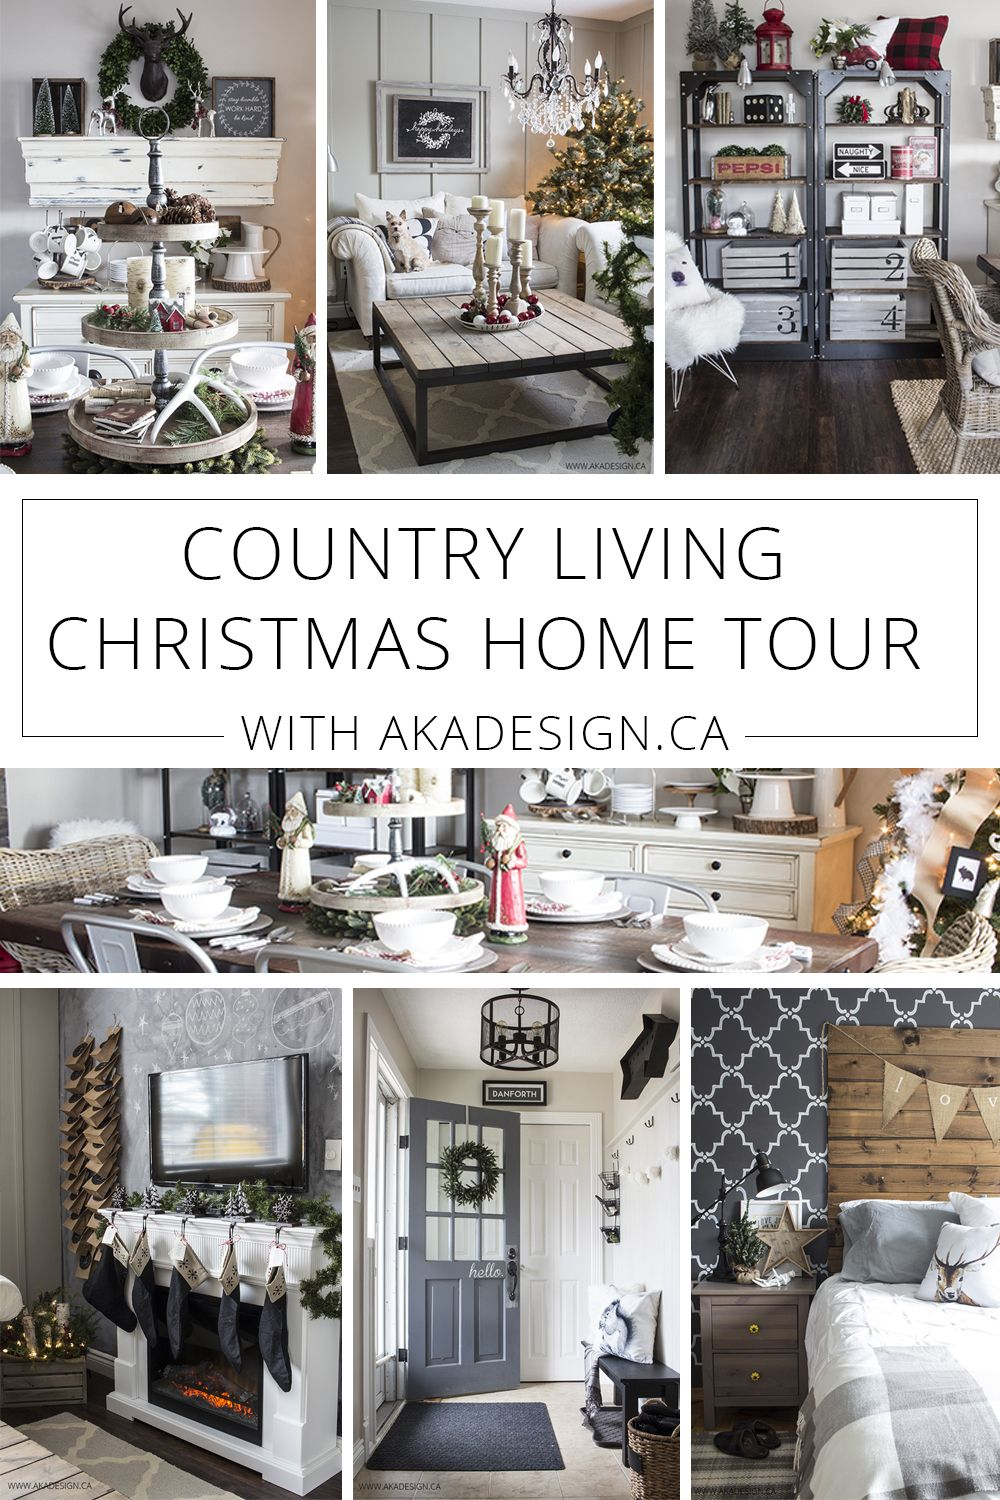 Country Living Christmas Home Tour | Country living and Seasonal decor